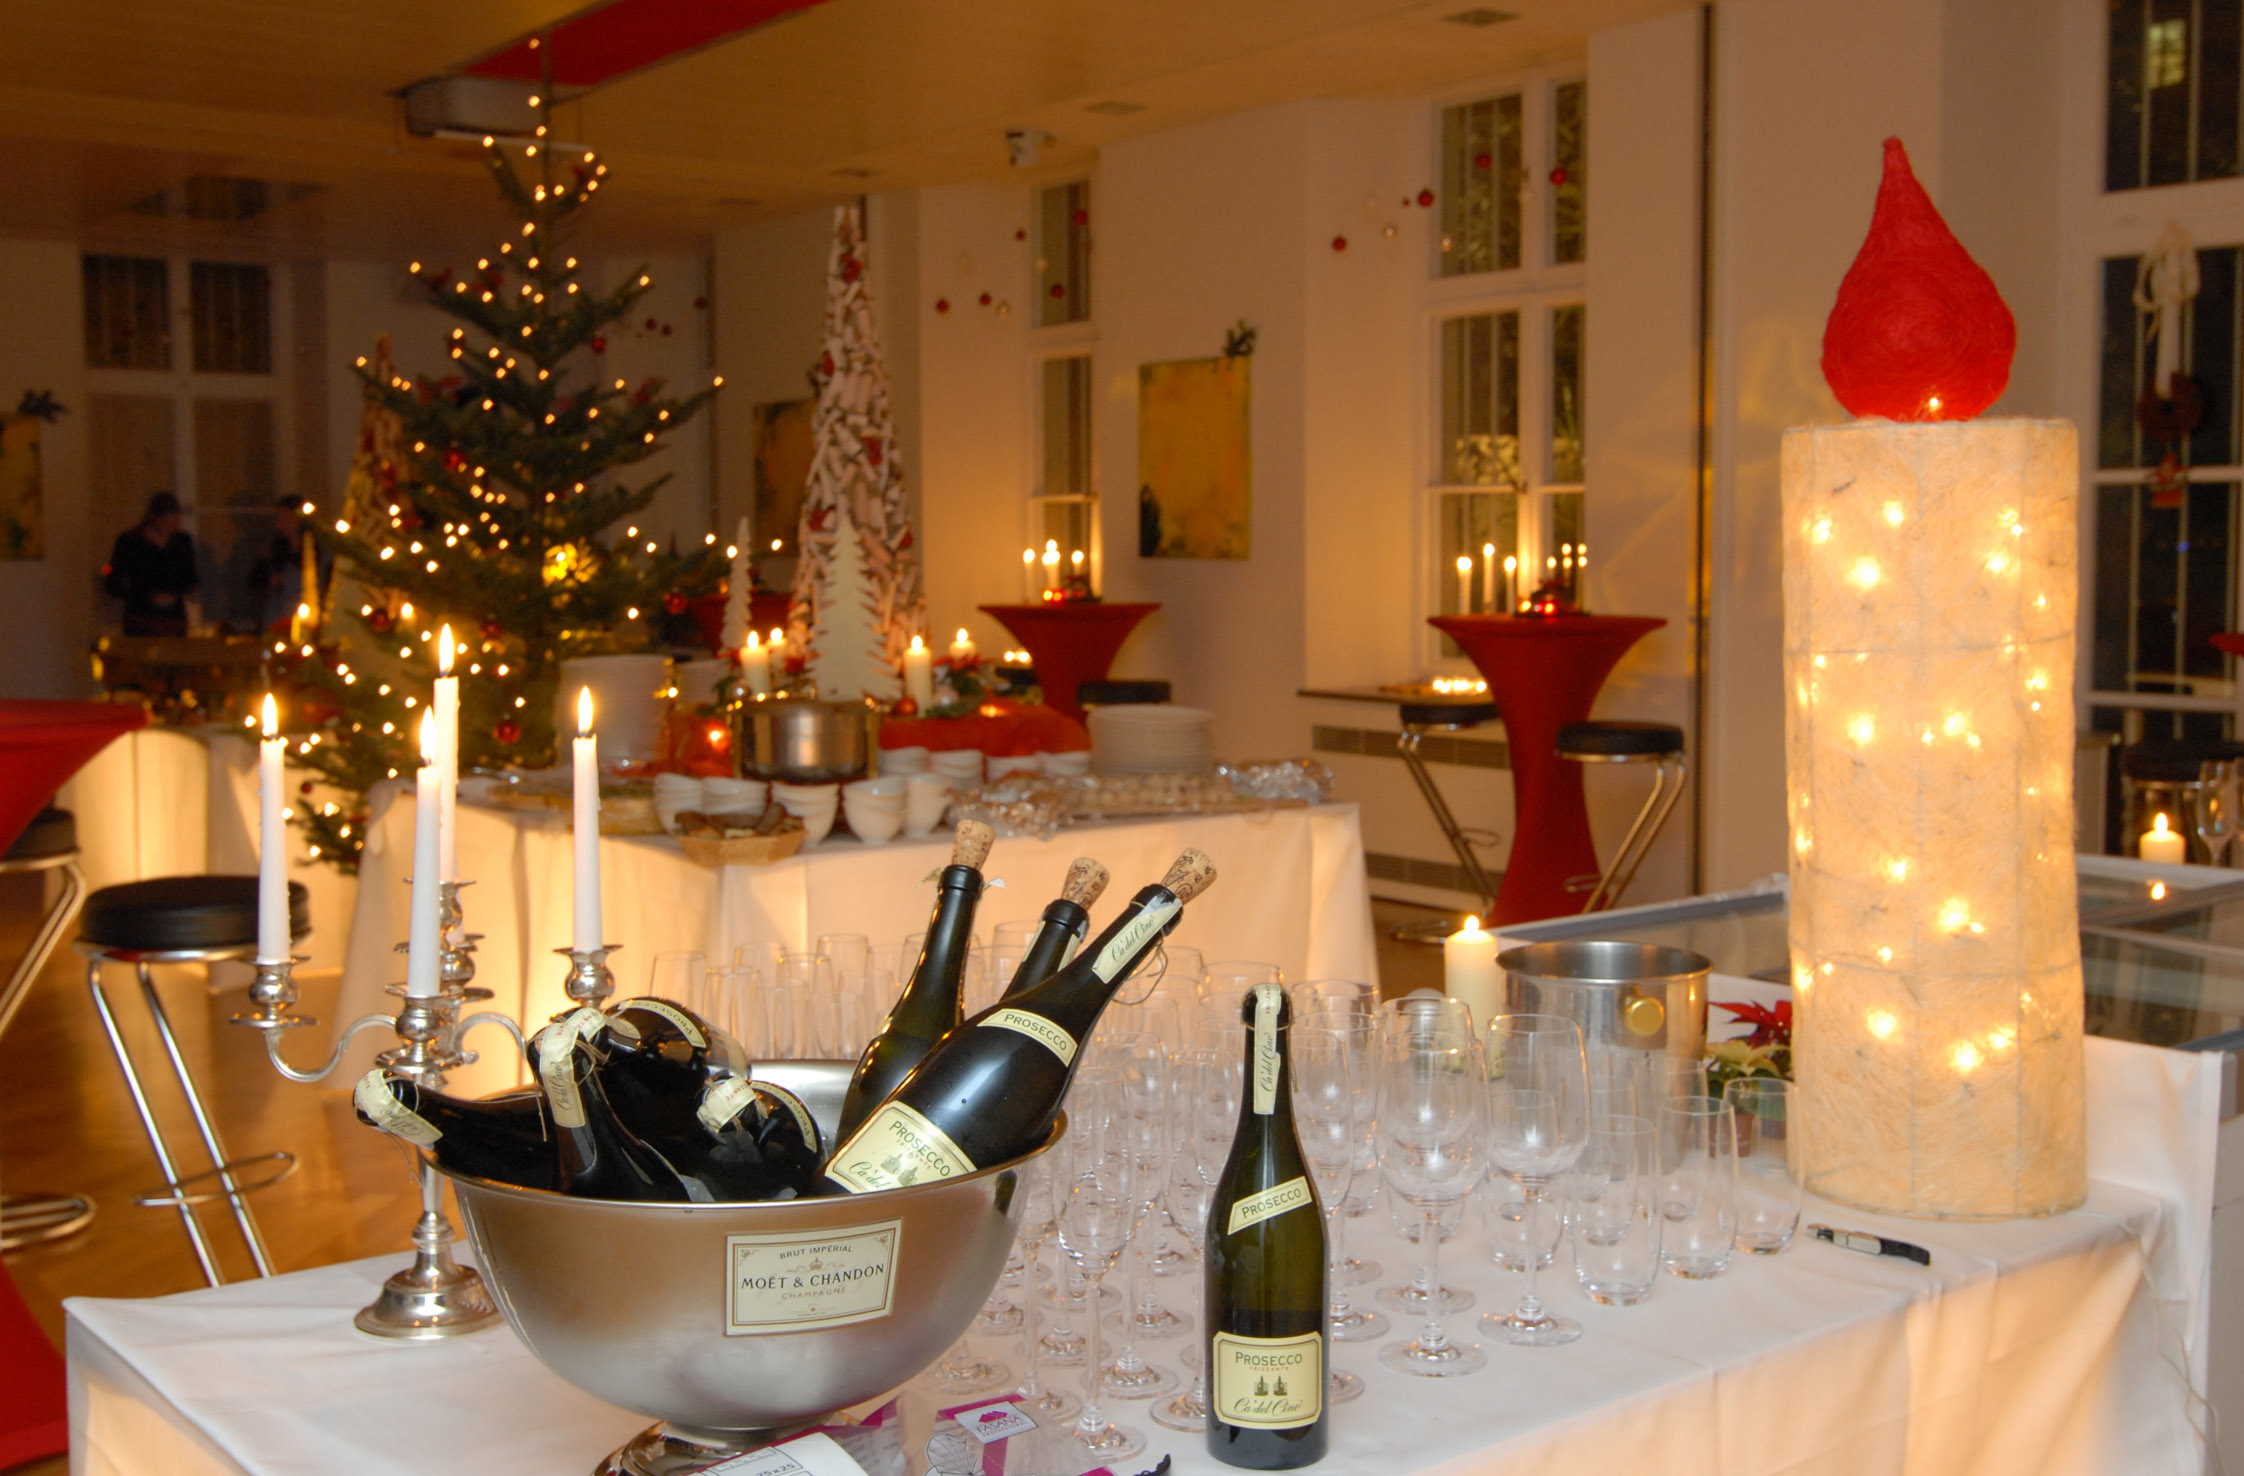 History of Finance Talk and Christmas Drinks   IE Blog Europe & CIS